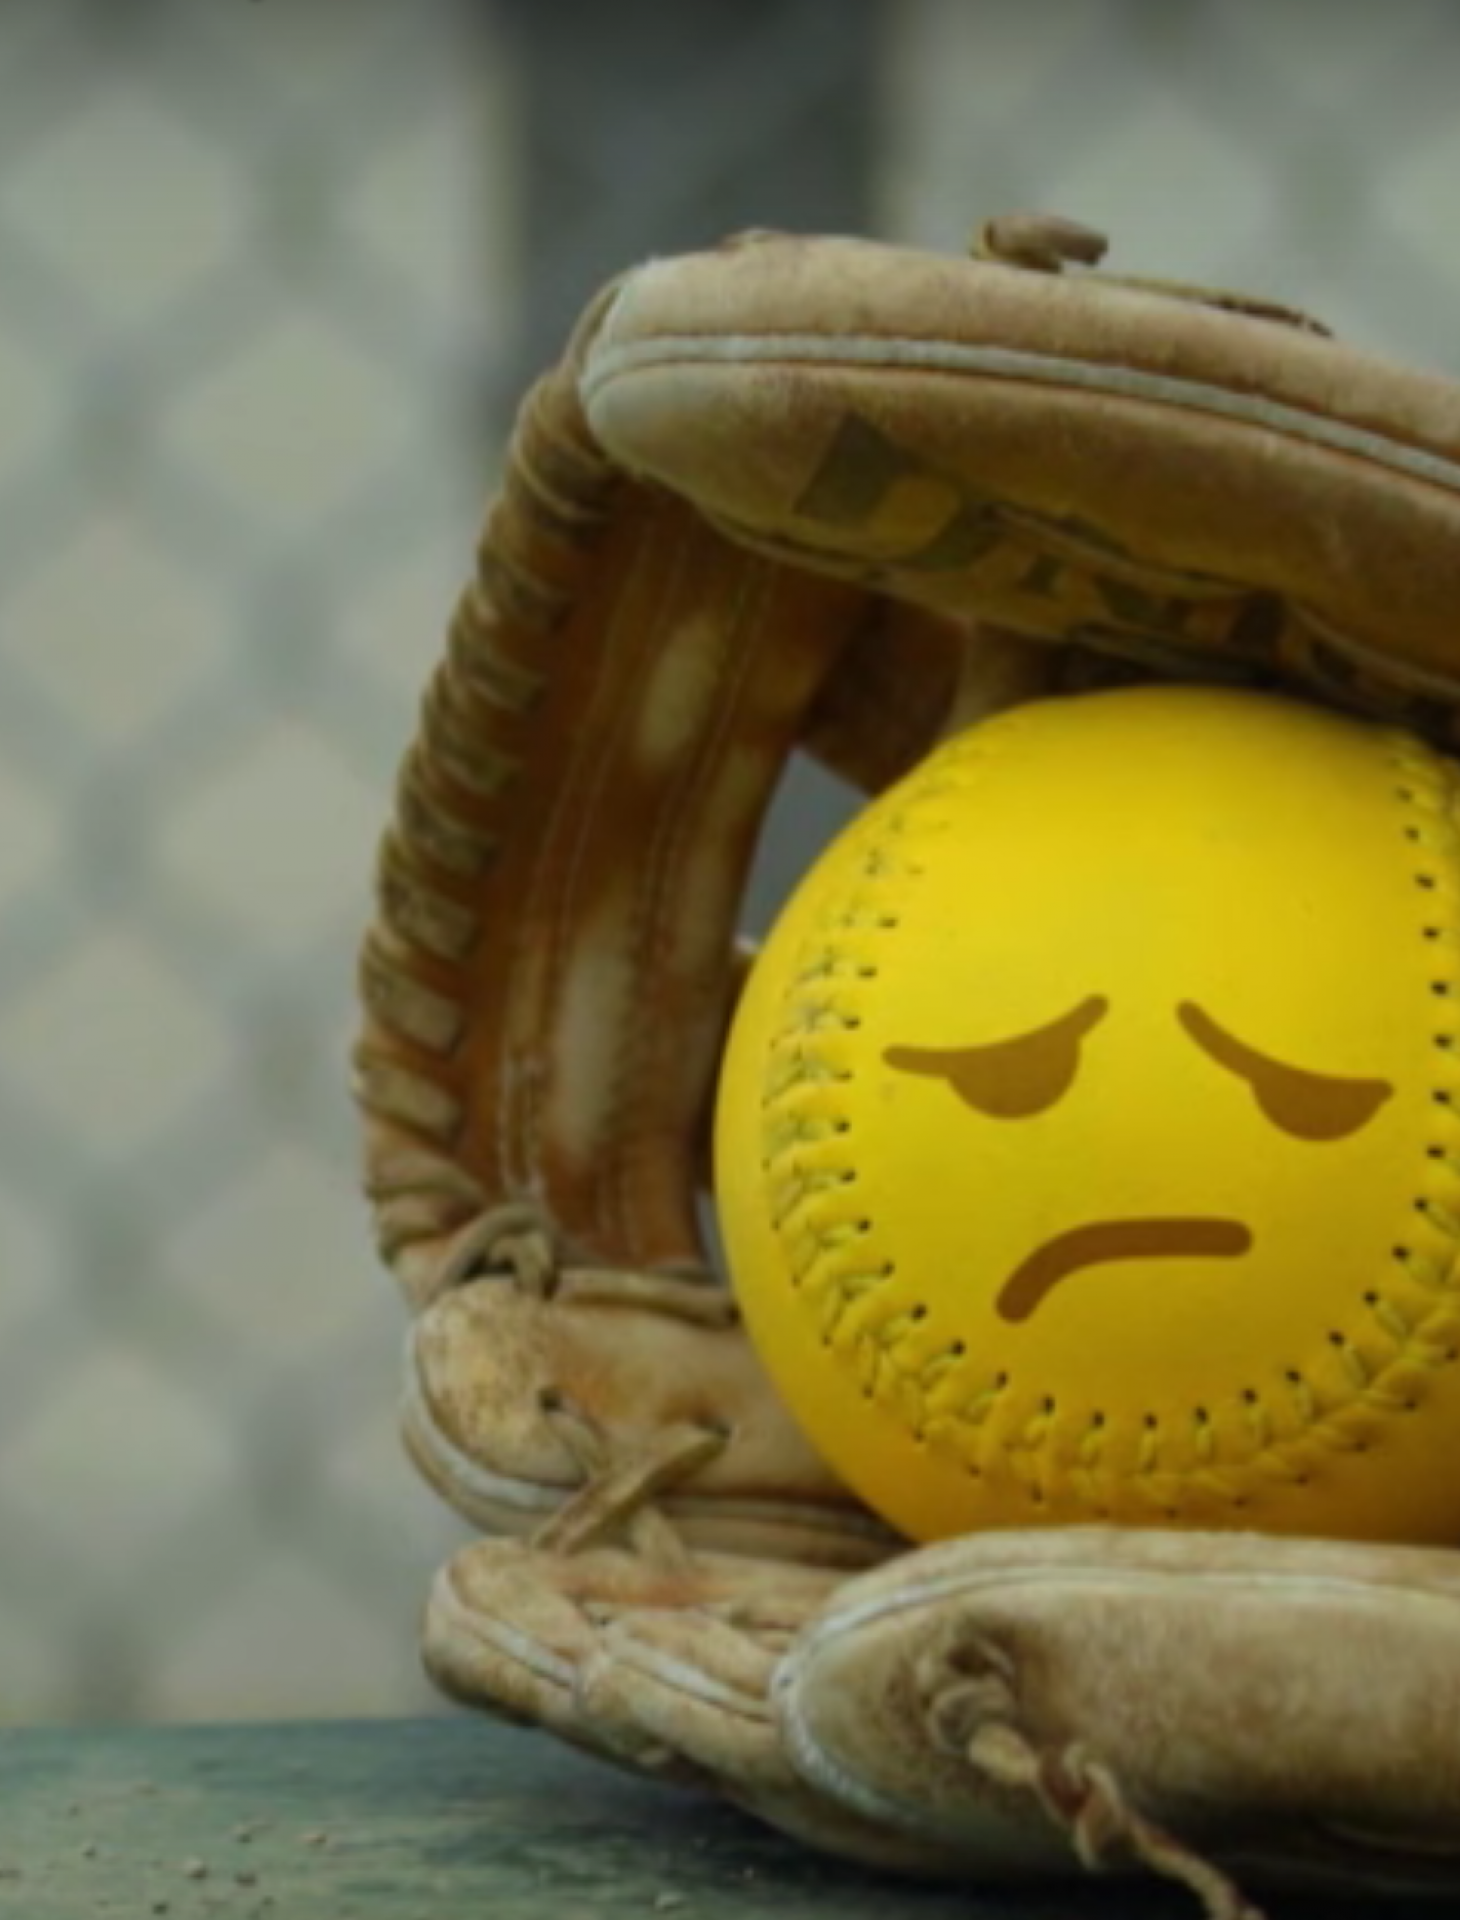 still photo of a yellow baseball with sad face in a baseball glove